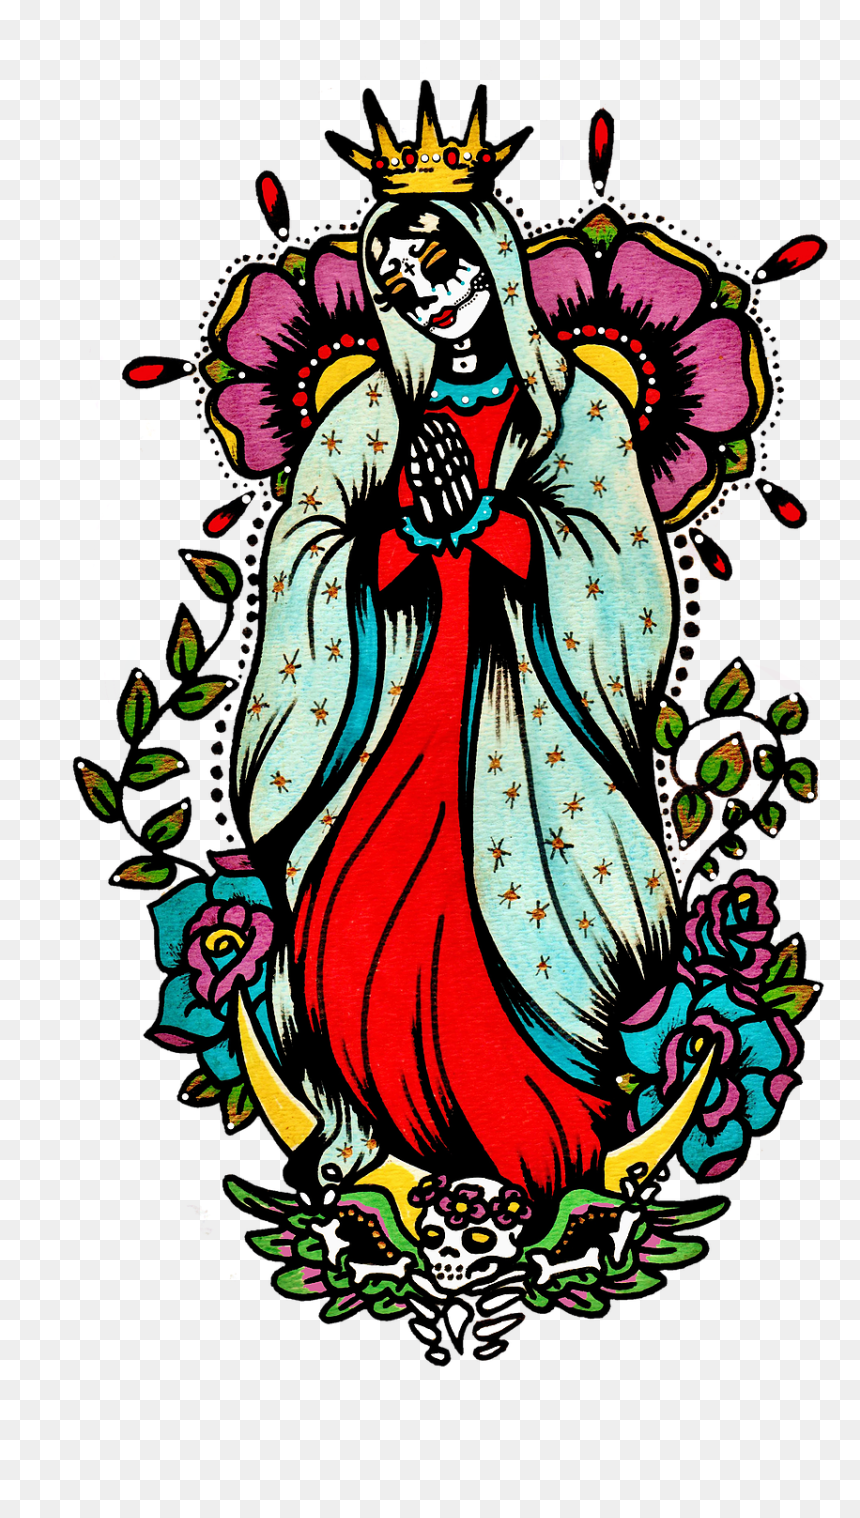 Transparent Virgin Mary Png - Day Of The Dead Virgin Mary, Png Download